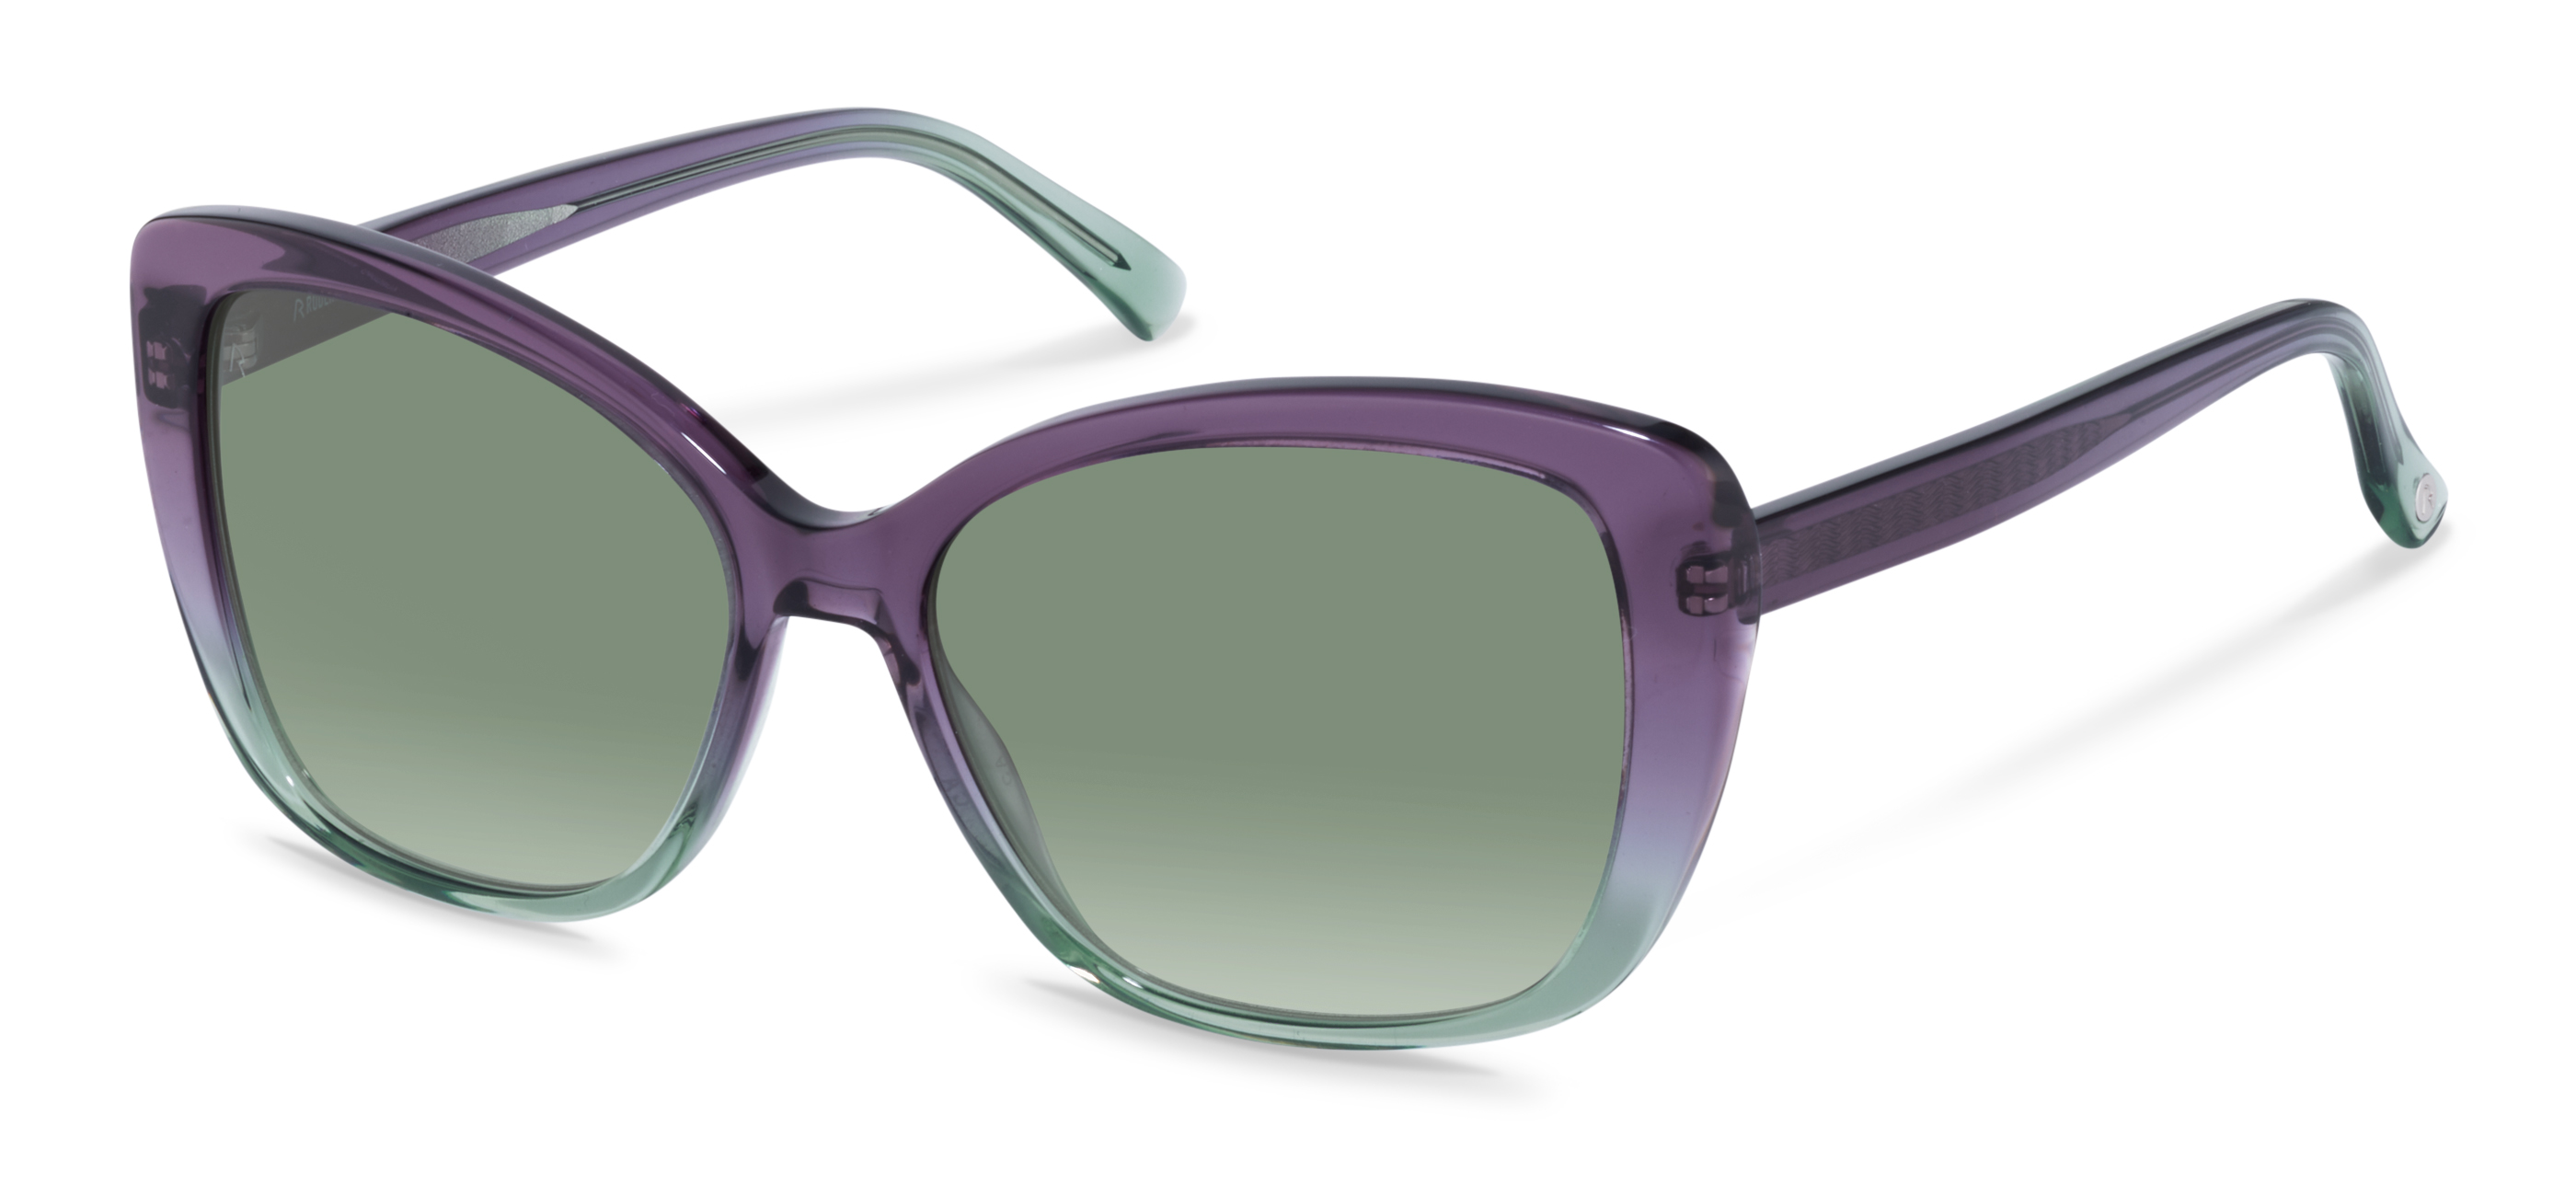 Rodenstock-Sunglasses-R3323-greyrosegradient